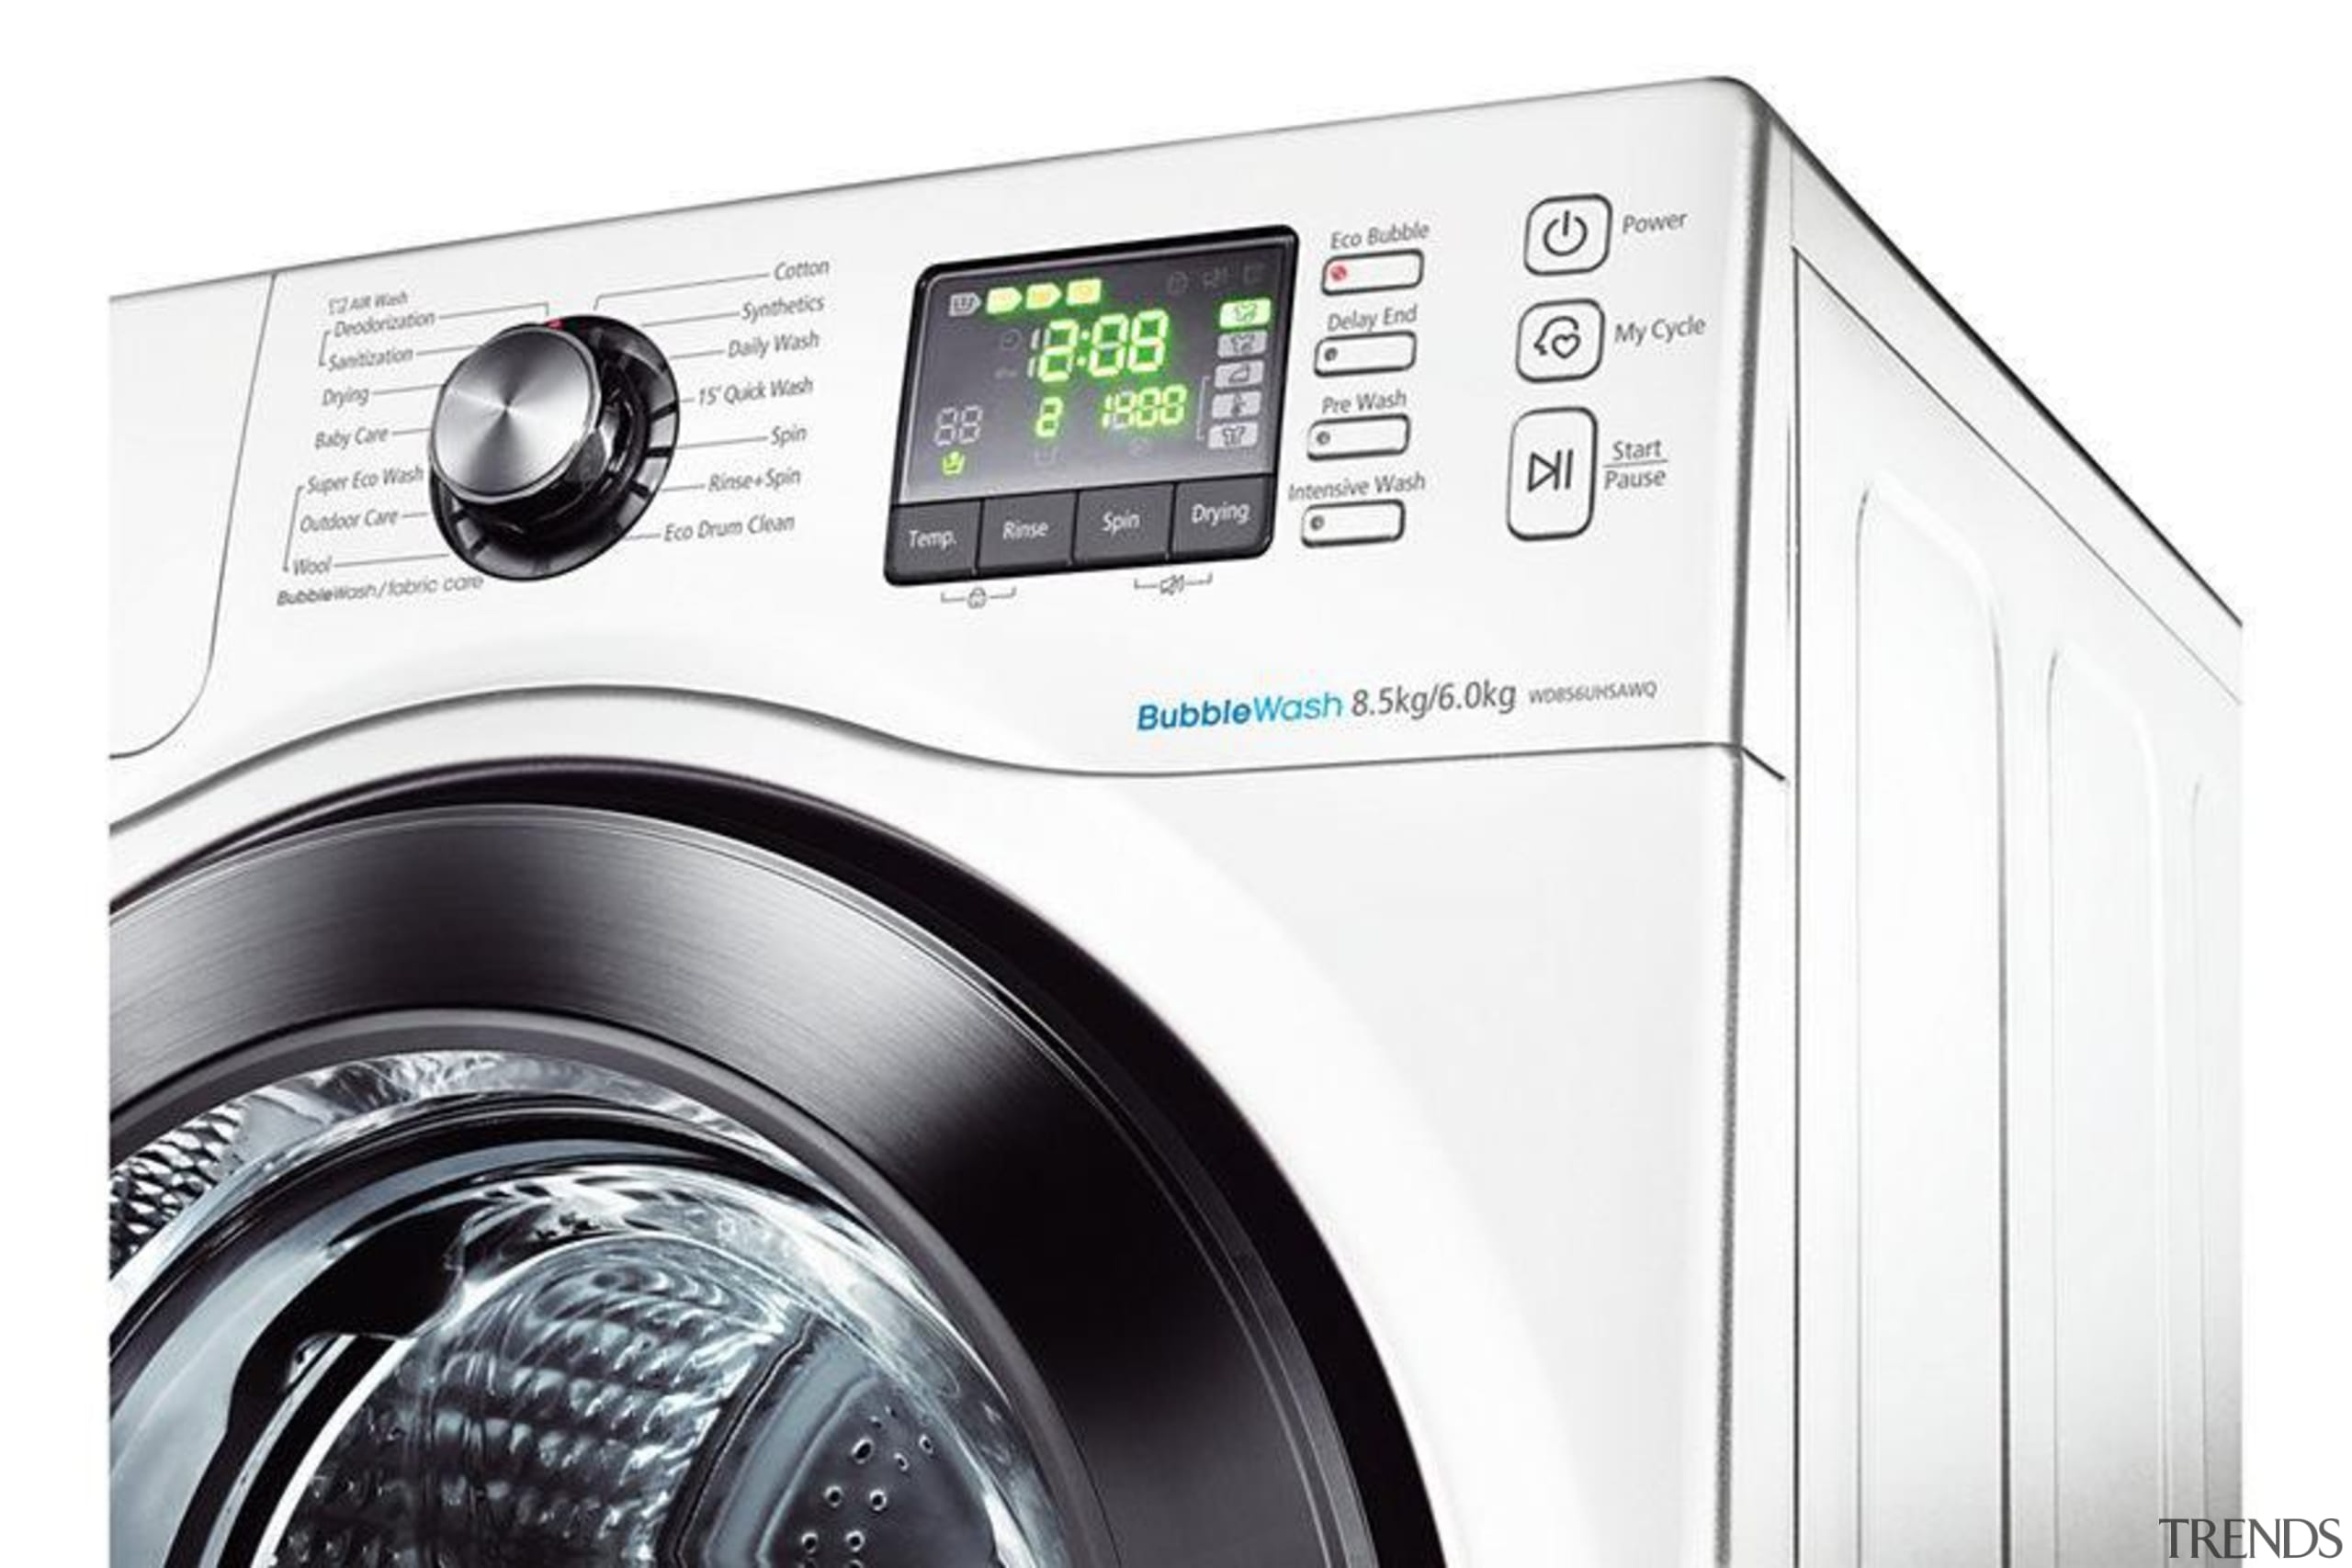 Laundry-Washer Dryer WD856UHSAWith the Quick Wash feature, you clothes dryer, home appliance, laundry, major appliance, product, product design, washing machine, white